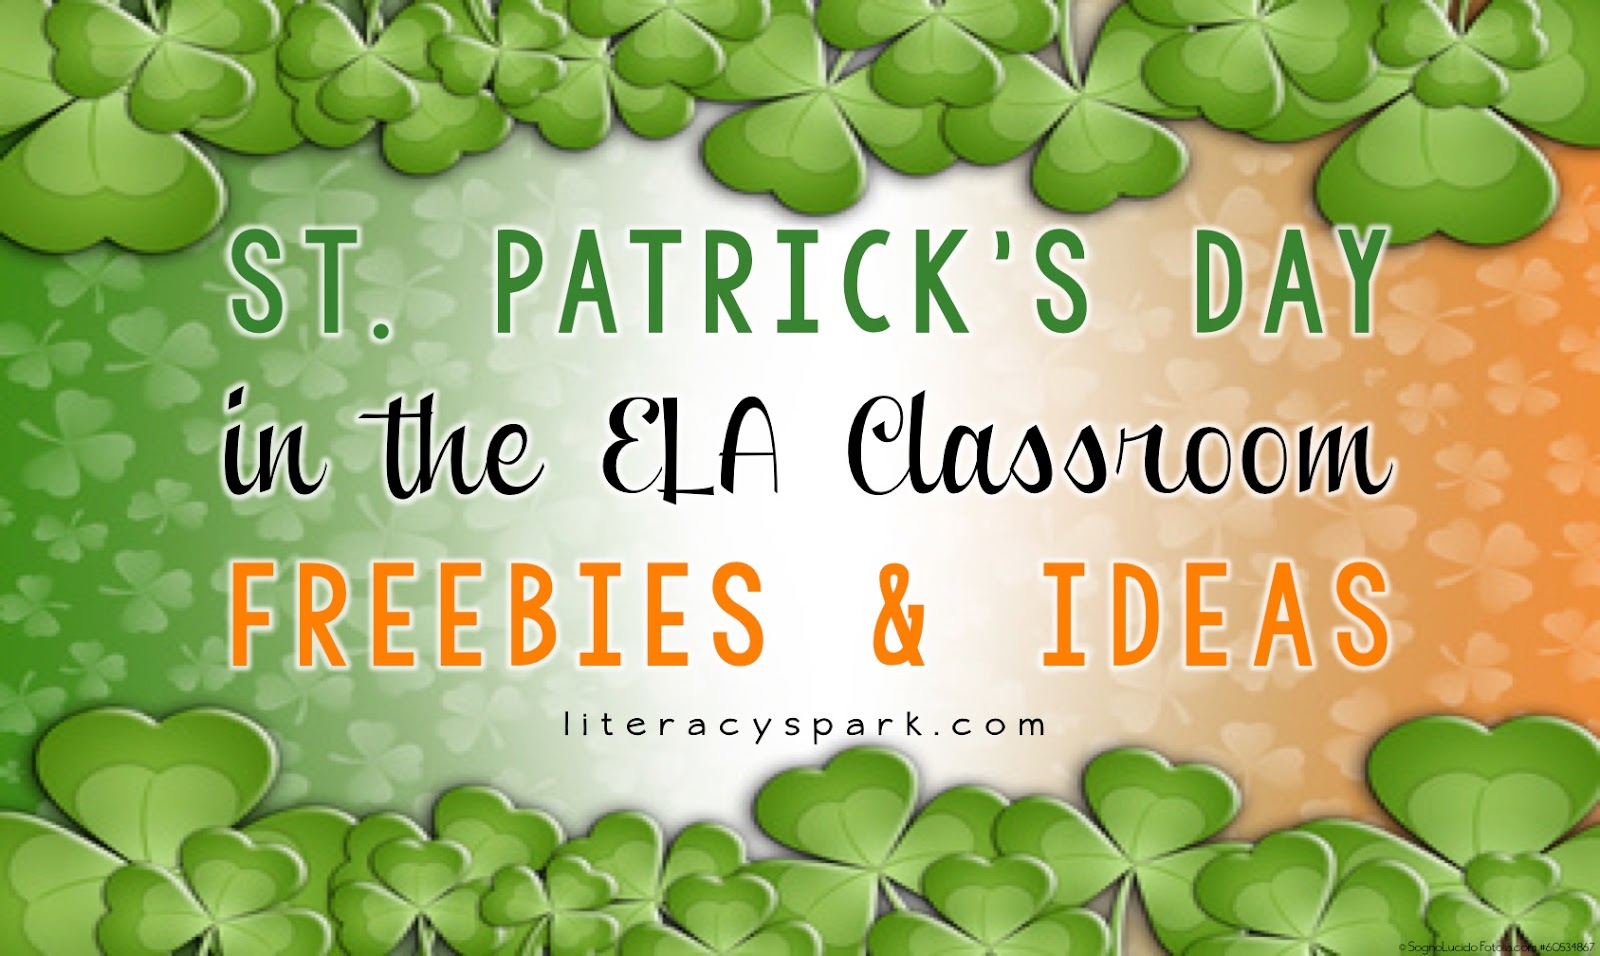 St Patricks Day Ideas Freebies Literacy Spark